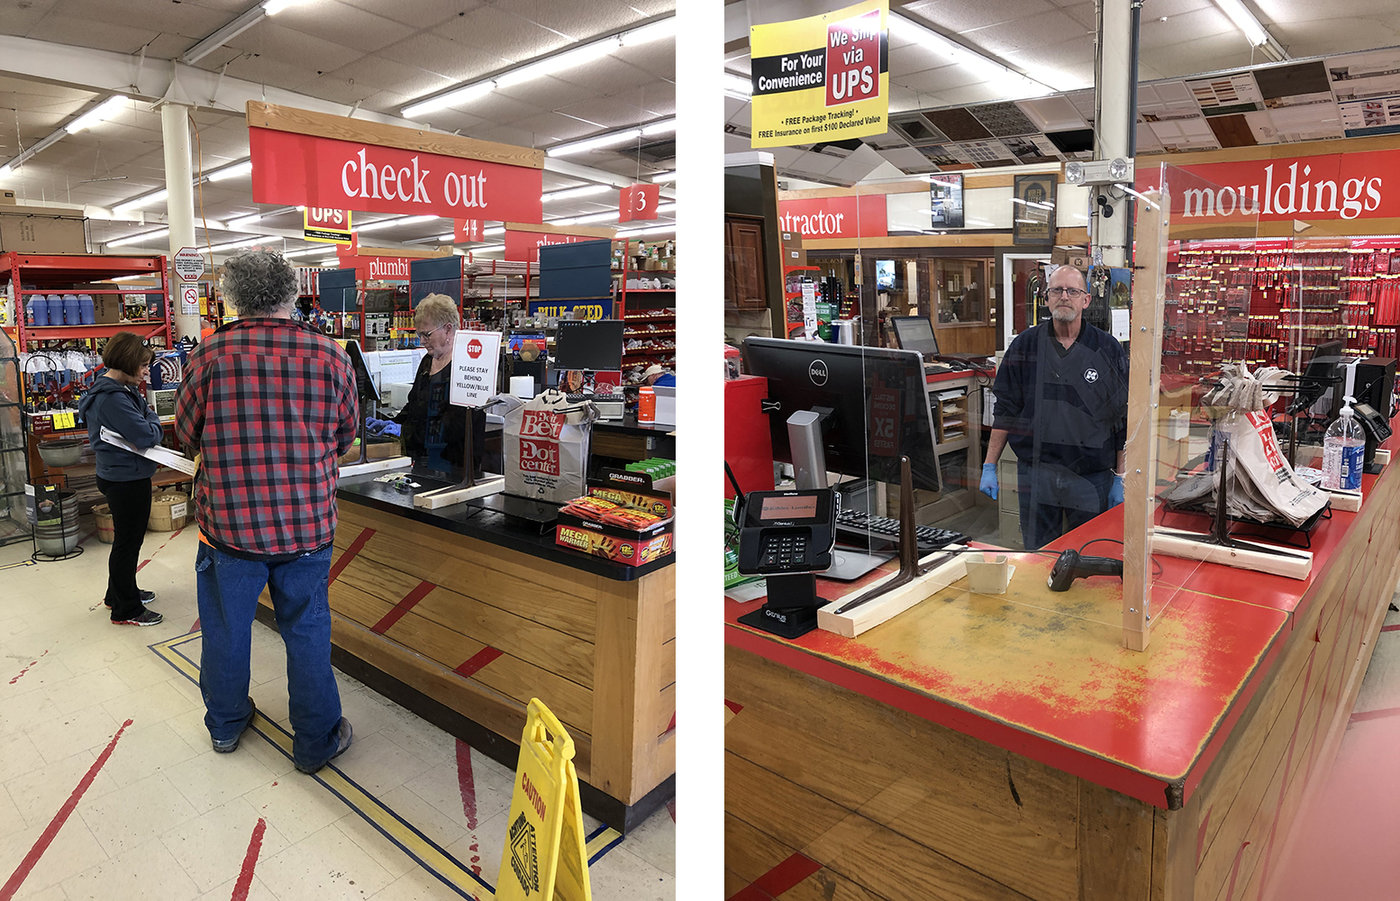 David Bohl of Kibler Lumber installed plexiglass shields at the checkout counter to create a safety barrier between customers and frontline staff. A sign informs customers to stay behind the blue and yellow line.